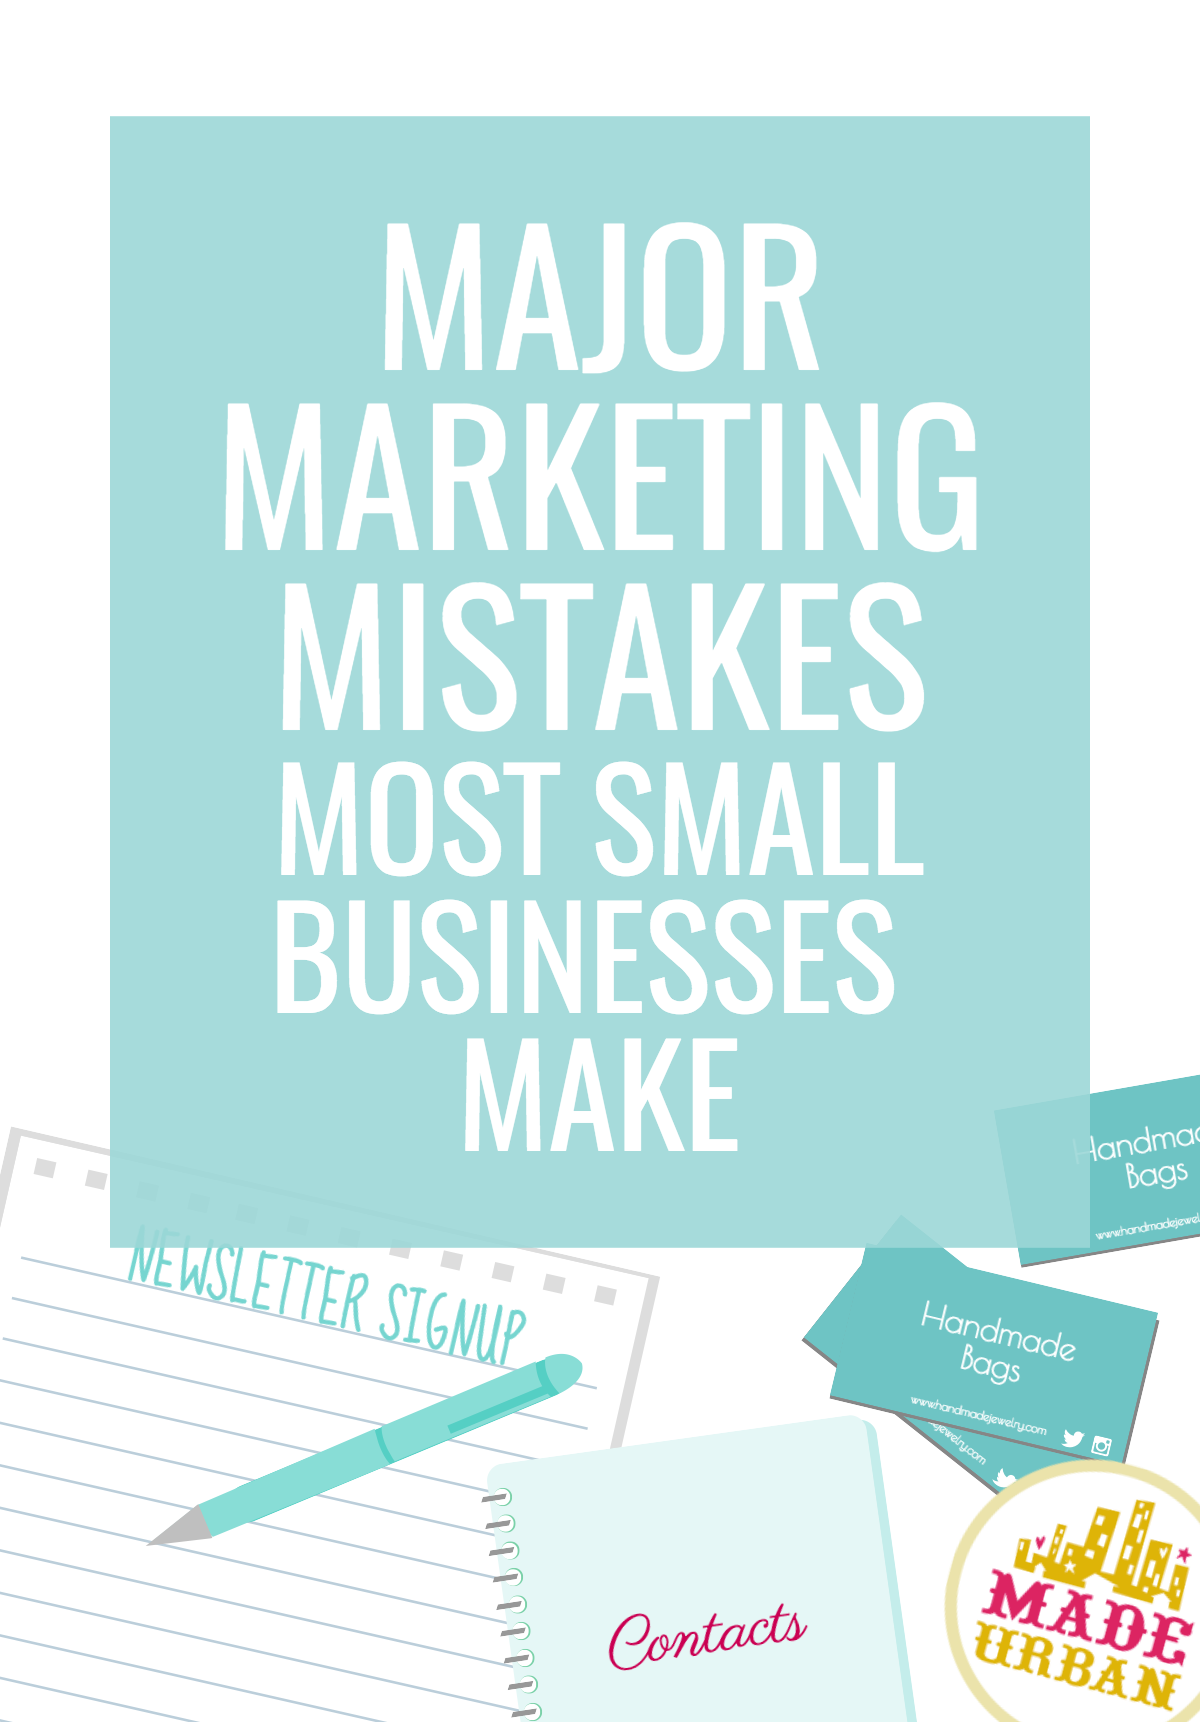 Marketing is essential to small handmade business success but many owners make these common mistakes that stop their customers and sales from growing.